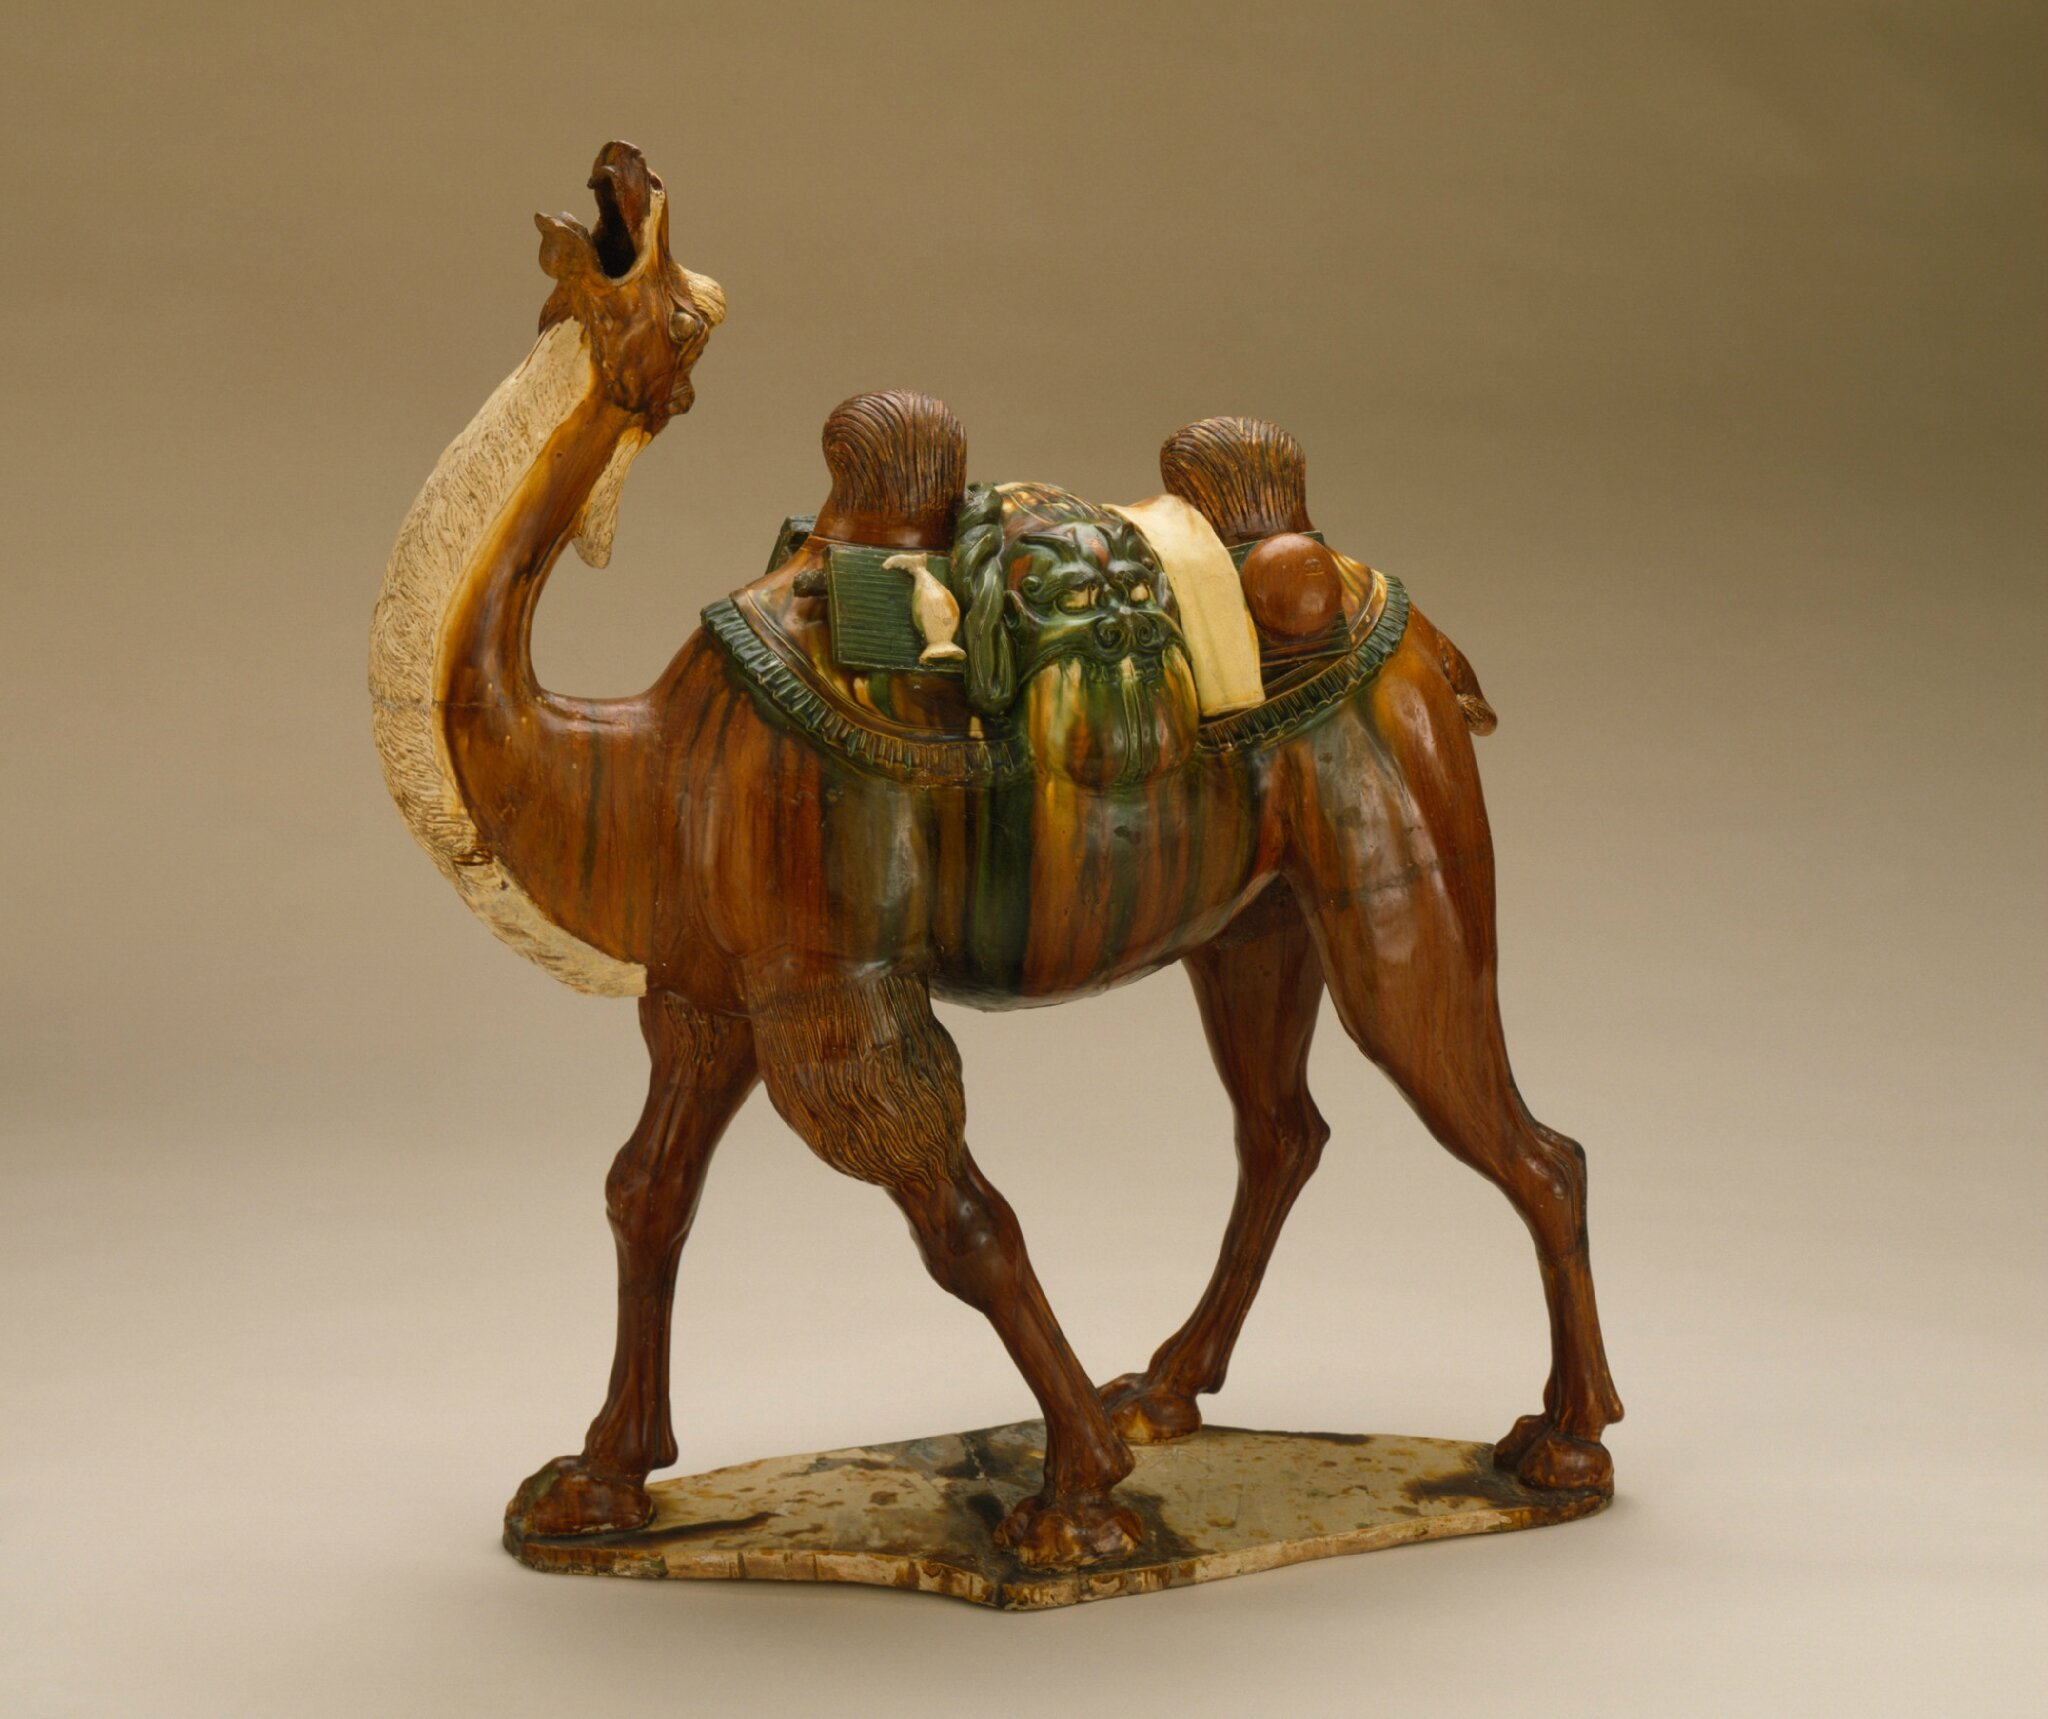 Funerary Sculpture of a Bactrian Camel, China, Chinese, middle Tang dynasty, about 700-800